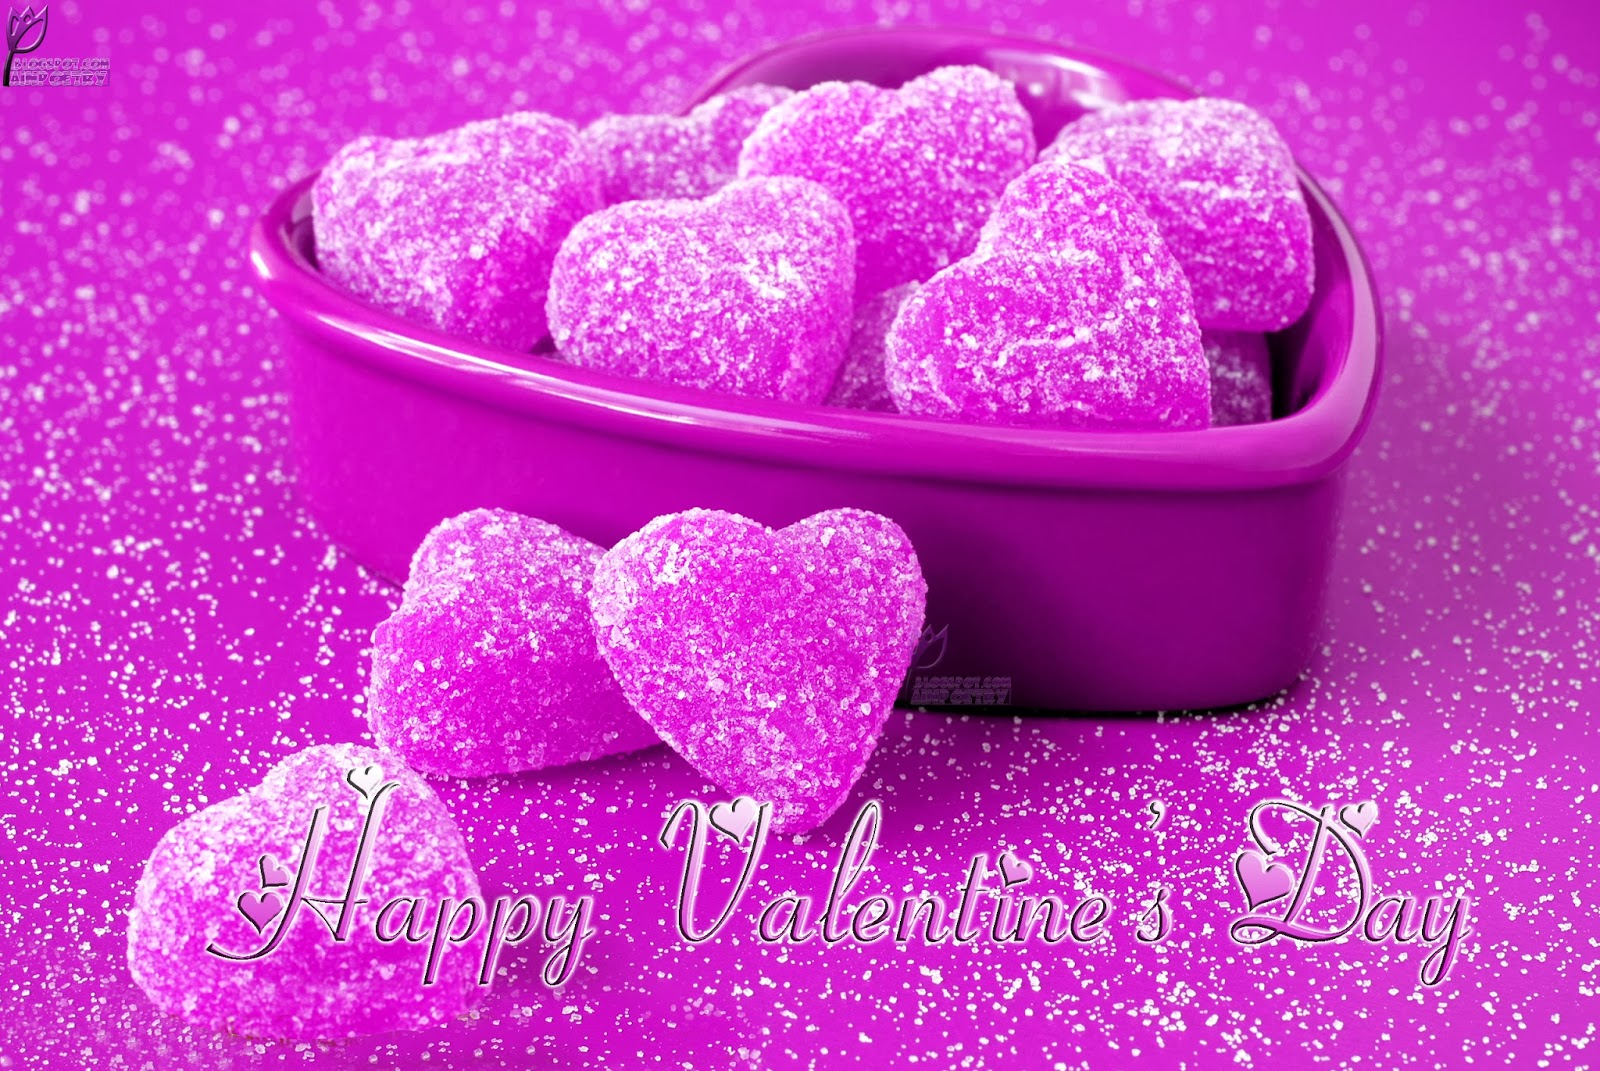 Happy-Valentines-Day-Wishes-With-Toffee-Image-HD-Wide